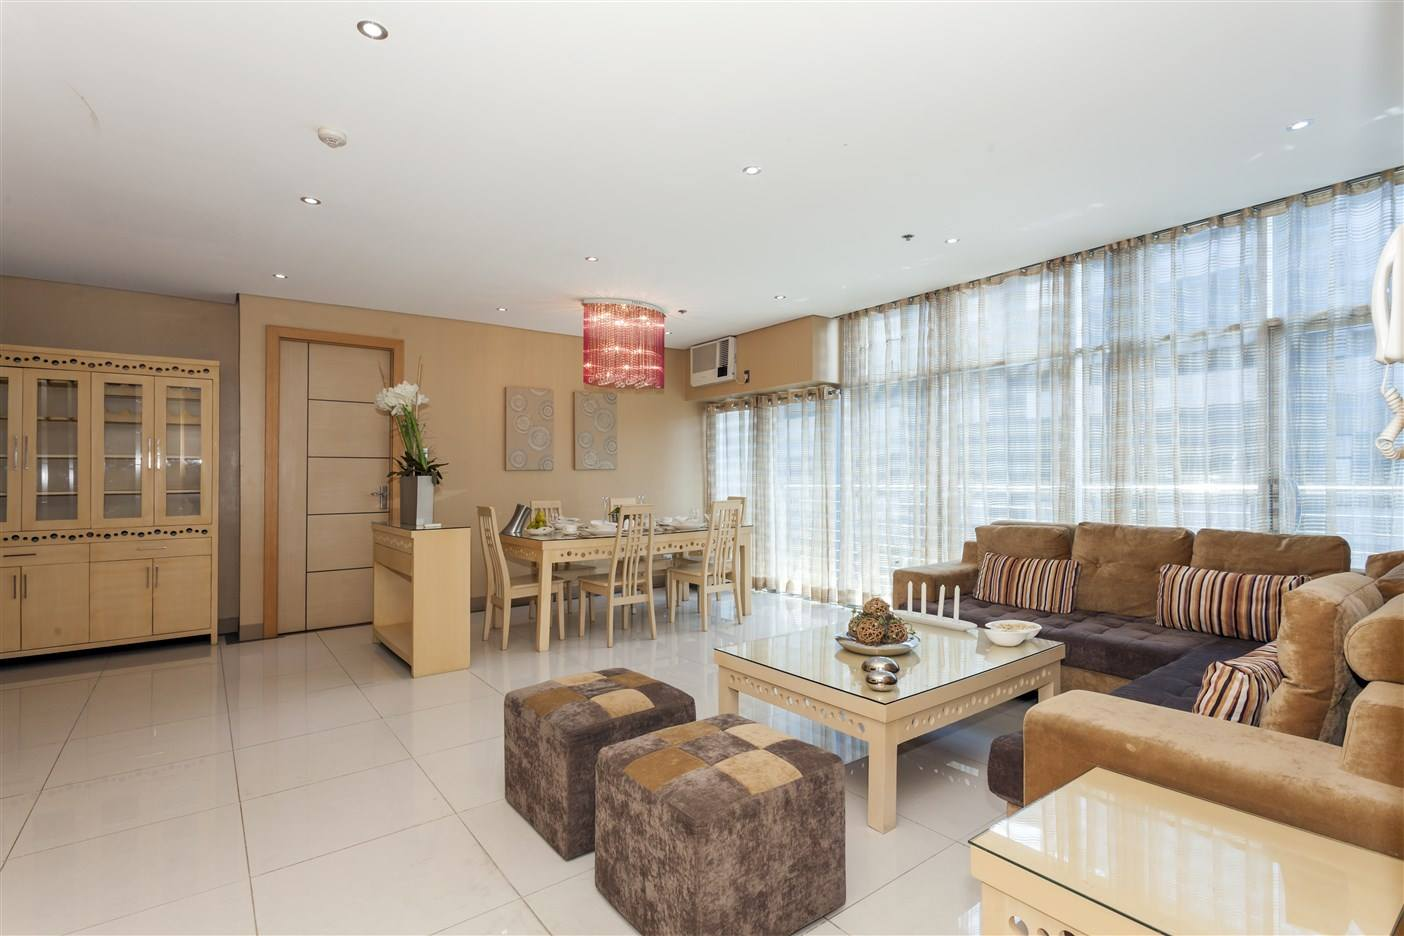 3 BR For Rent BGC Luxe Residences BGC